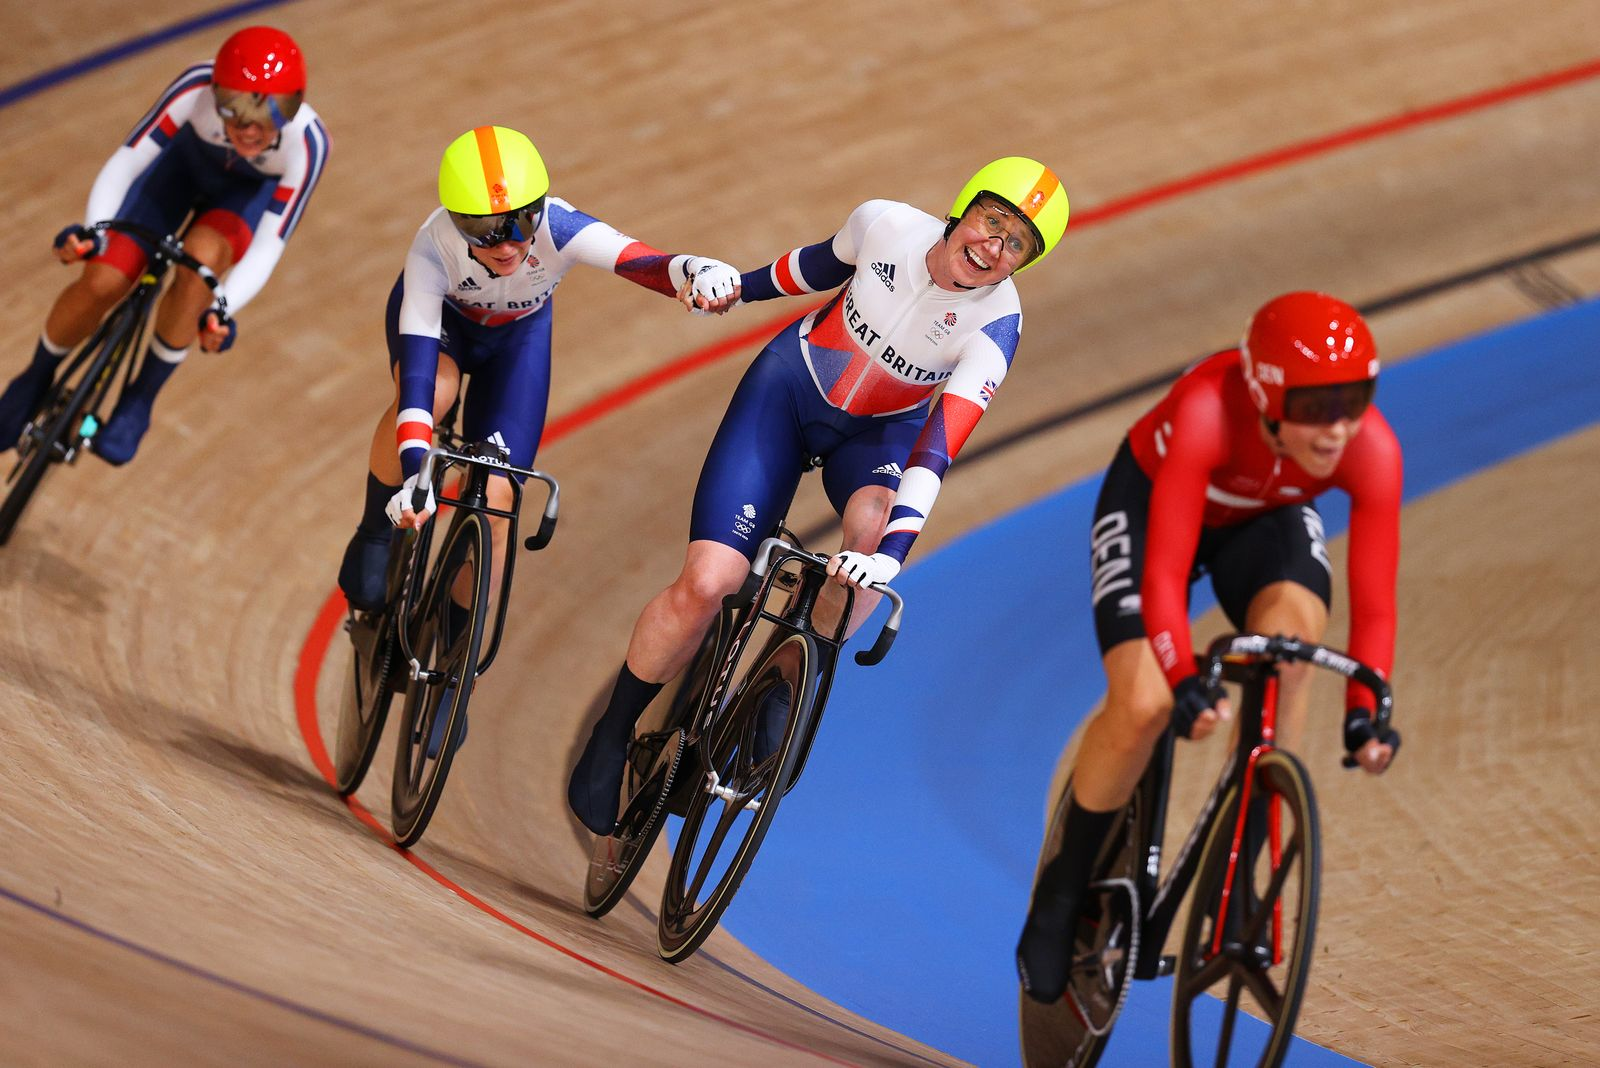 Cycling - Track - Olympics: Day 14